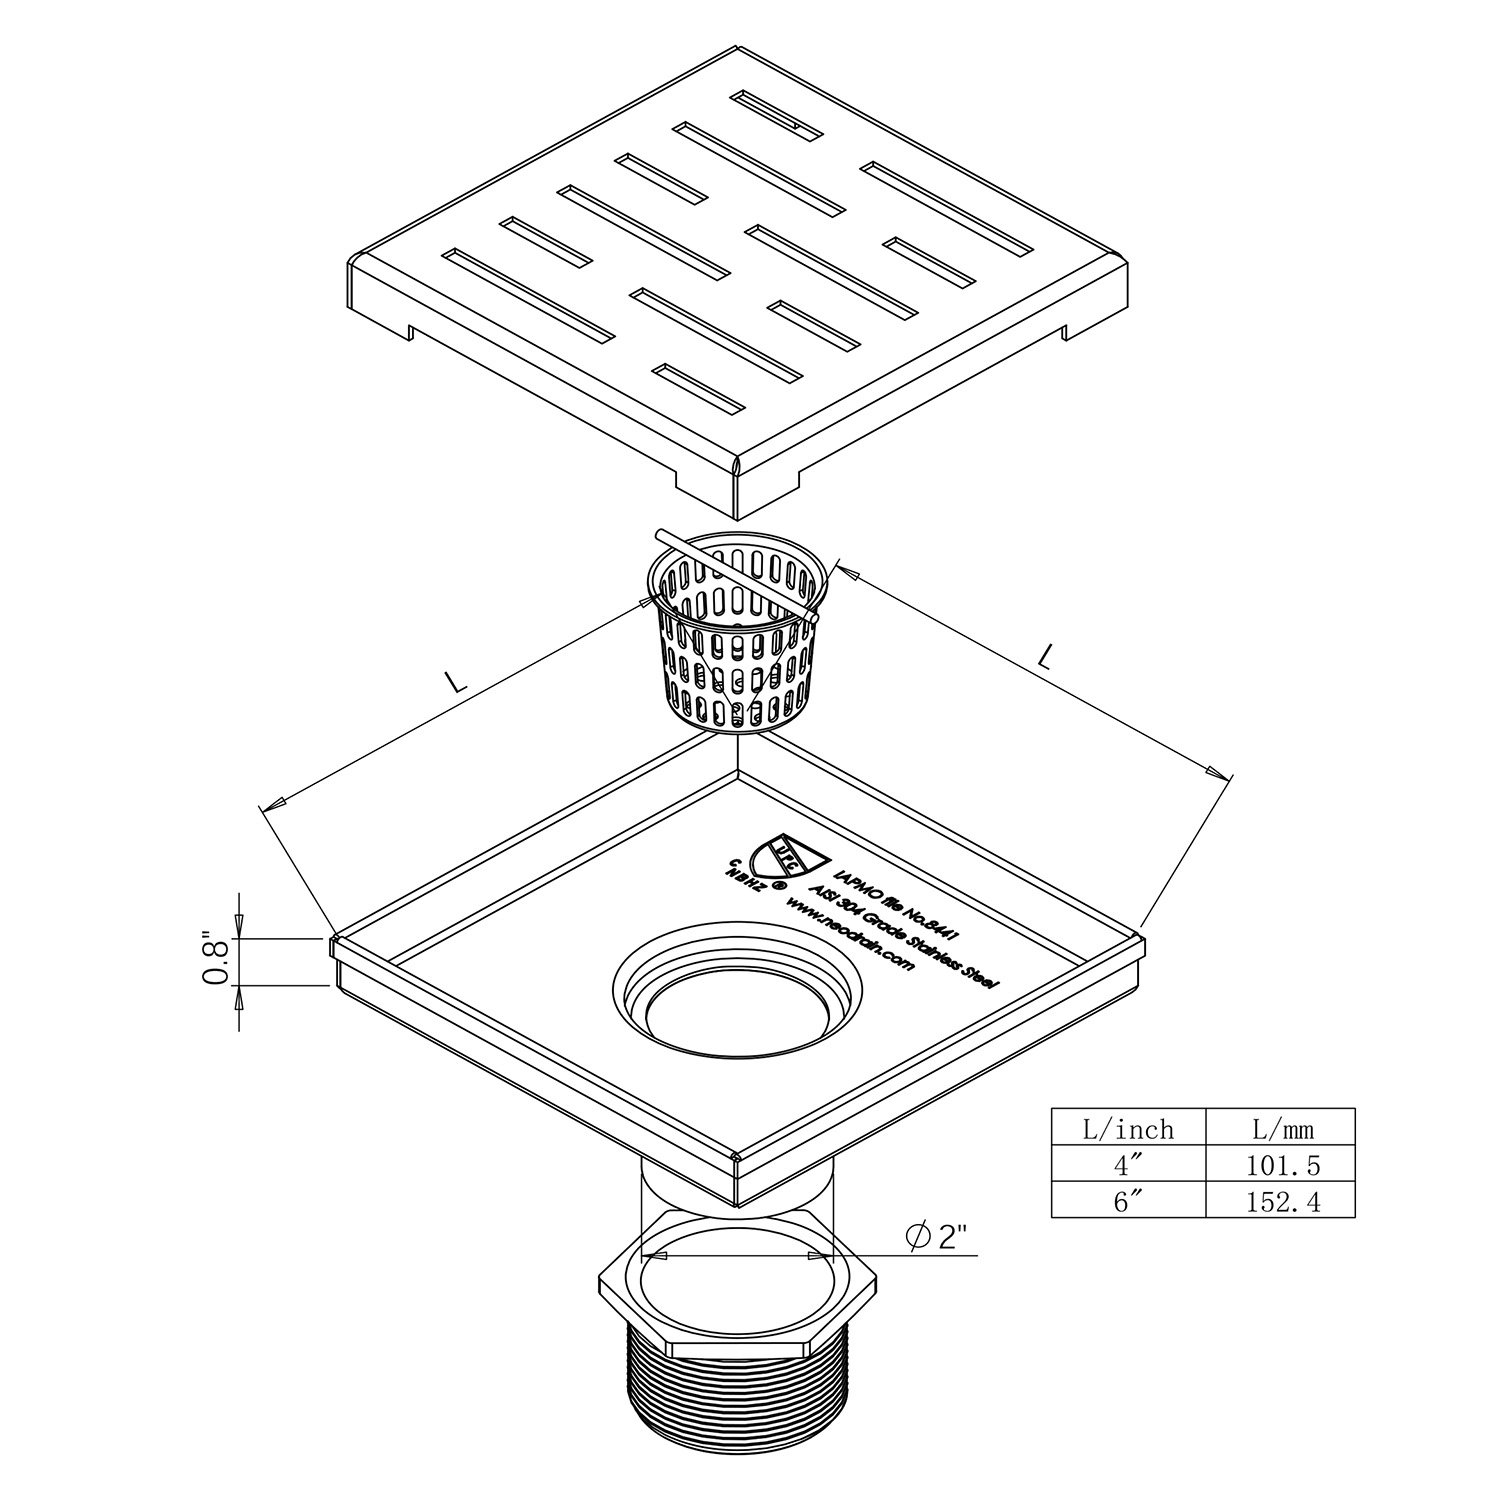 Neodrain Square Shower Drain with Removable Brick Pattern Grate, 4-Inch, Brushed 304 Stainless Steel, With WATERMARK&CUPC Certified, Includes Hair Strainer by Neodrain (Image #4)